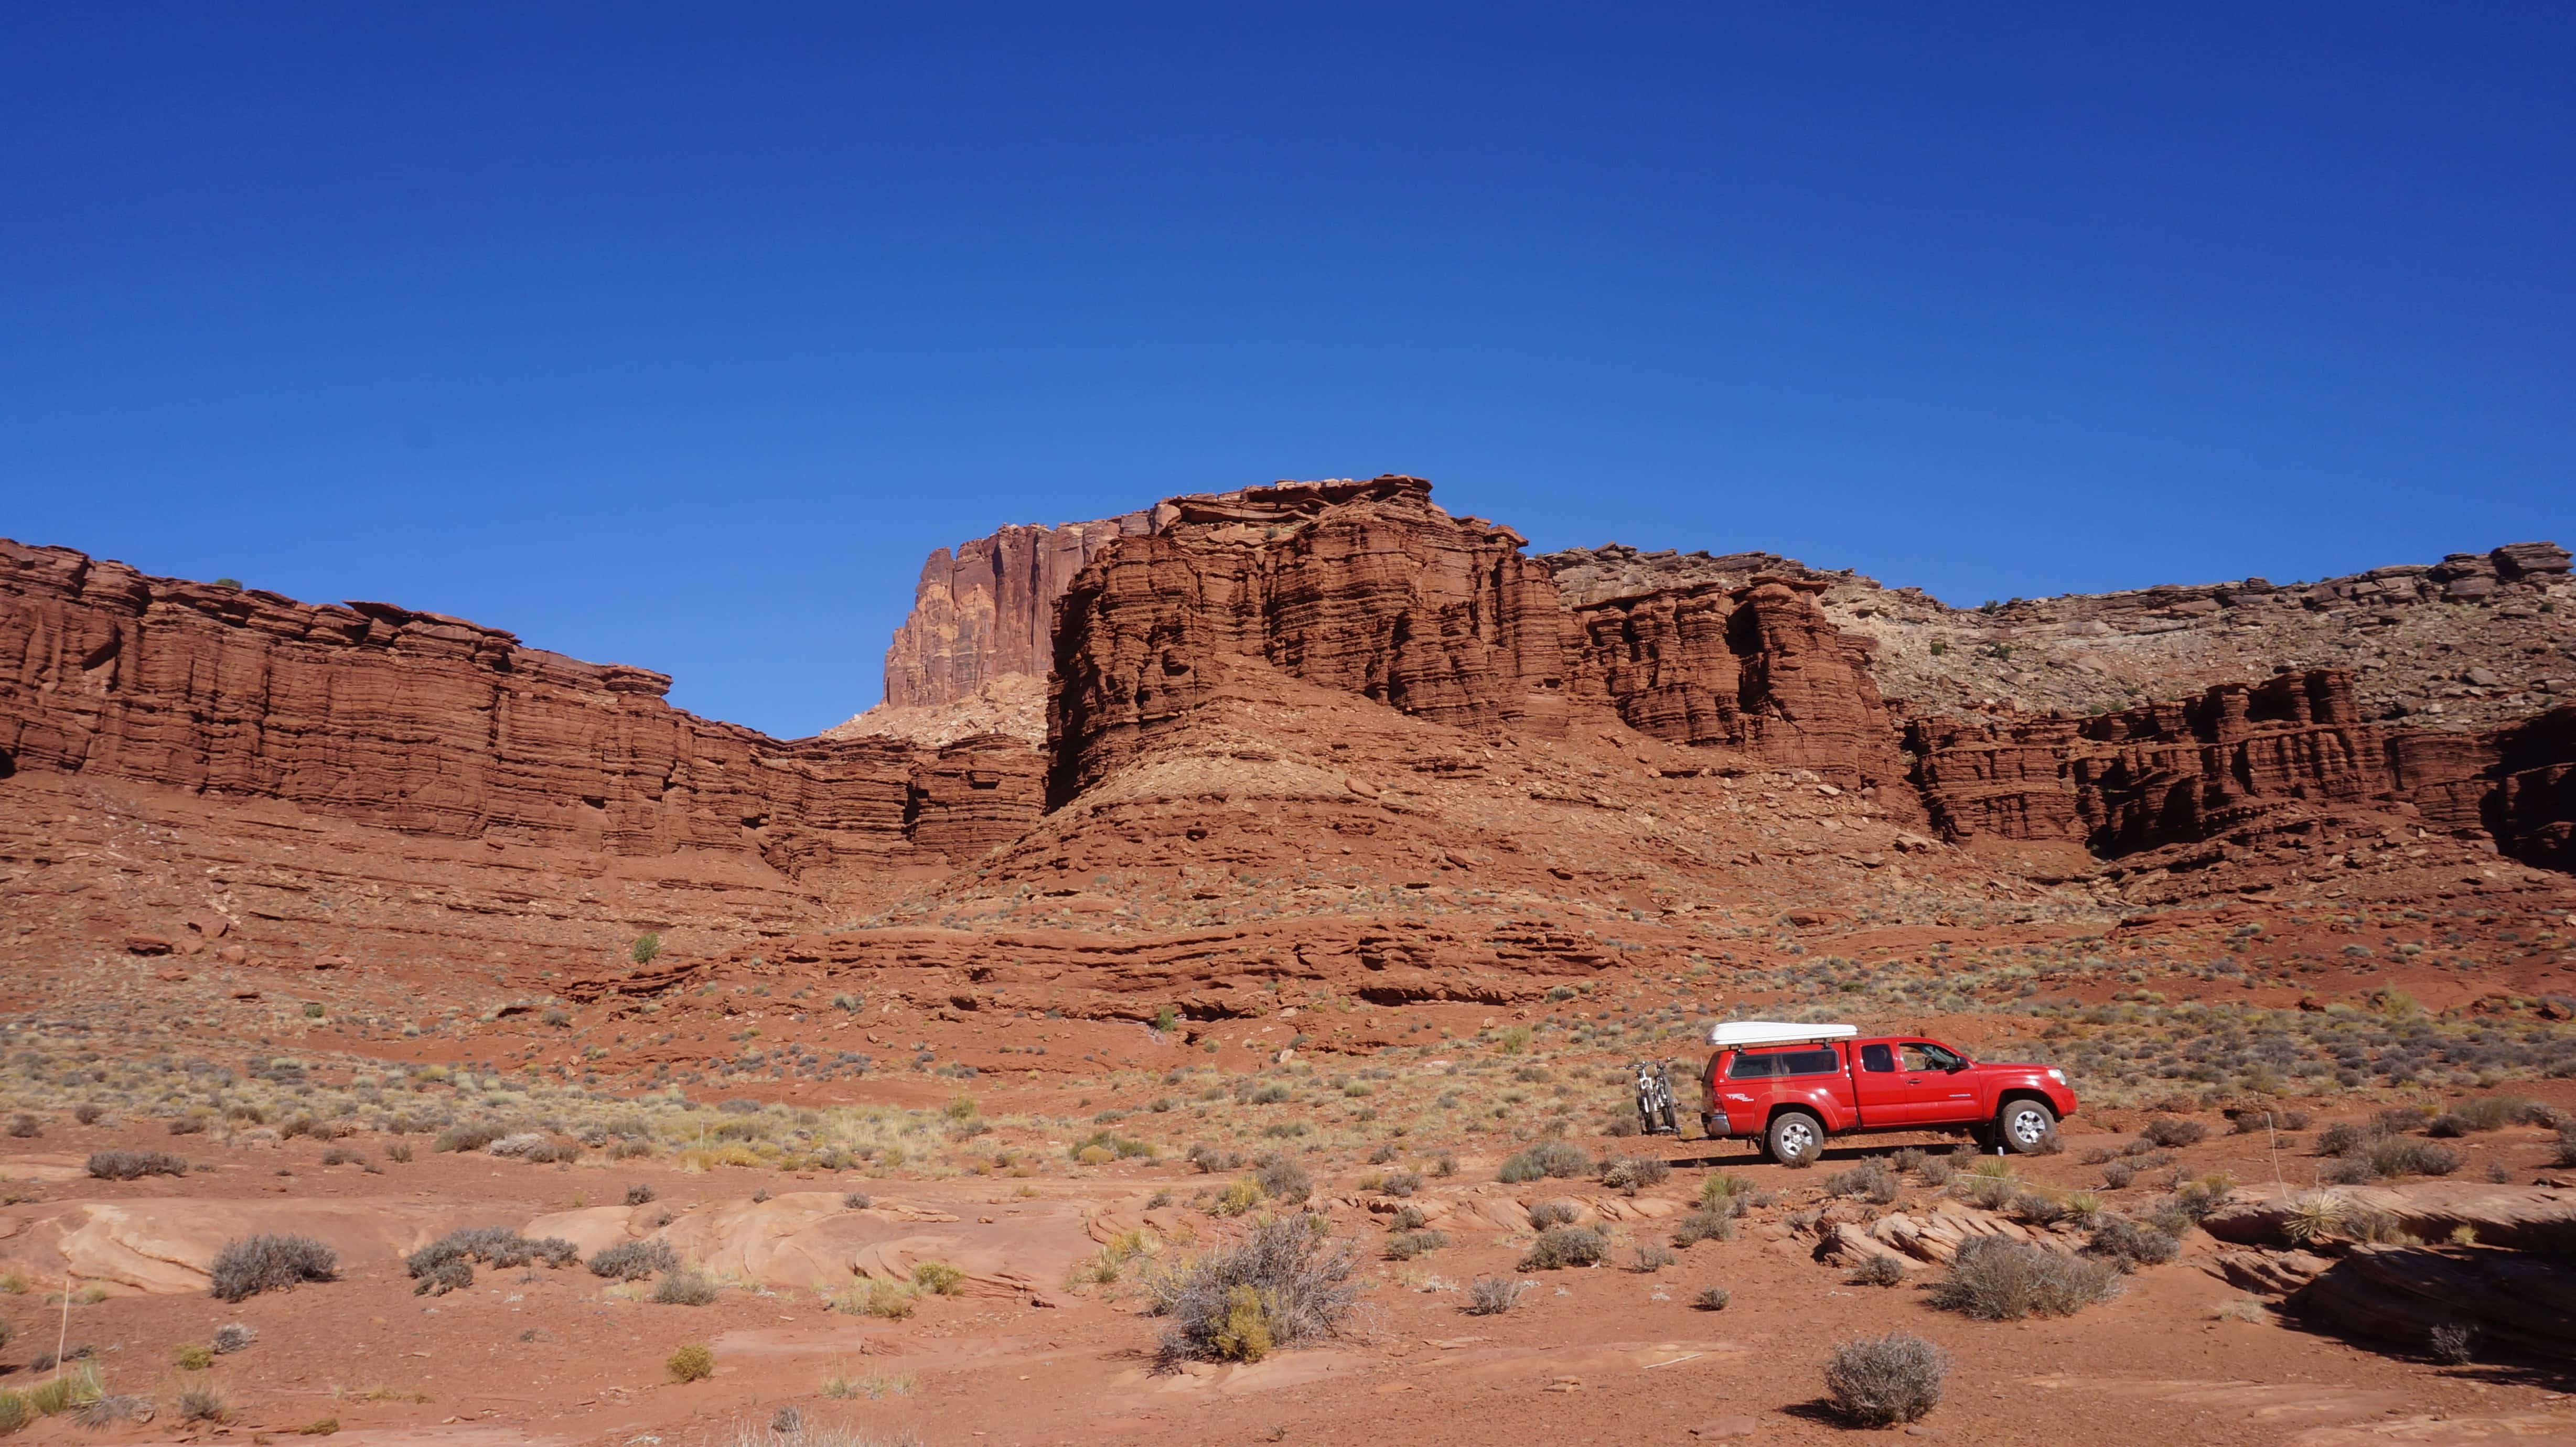 This was our support vehicle for our biking trip on the White Rim Trail in Canyonlands National Park